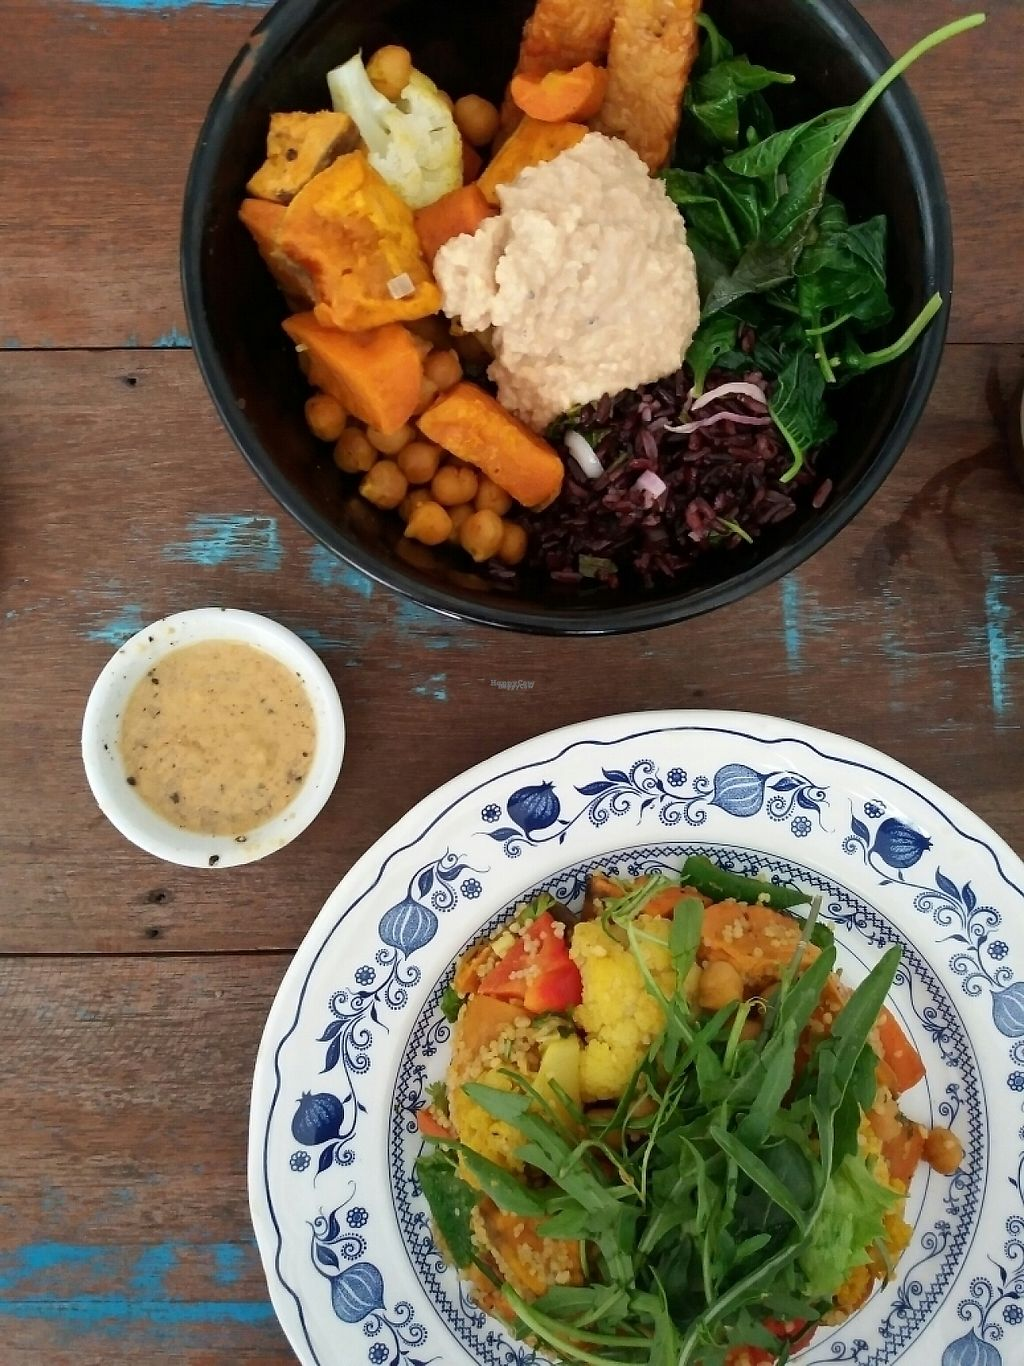 """Photo of Lot369  by <a href=""""/members/profile/coco_papillon"""">coco_papillon</a> <br/>coucous salad and buddha bowl ❤ <br/> January 24, 2017  - <a href='/contact/abuse/image/83744/215609'>Report</a>"""